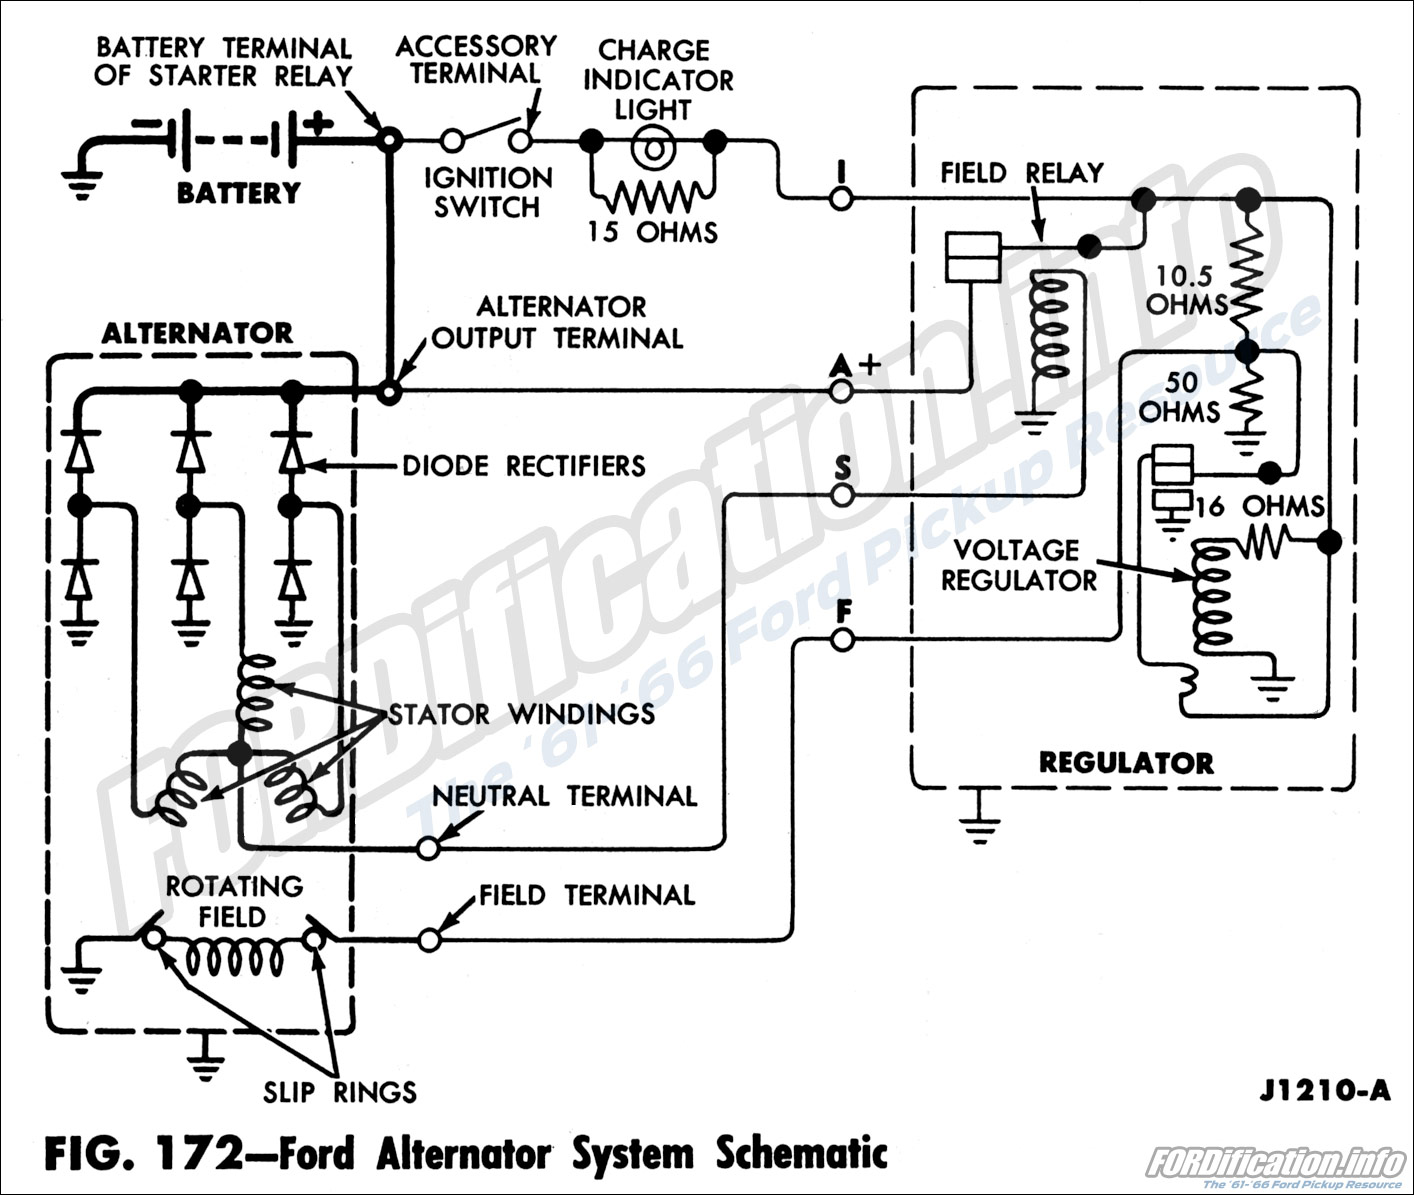 model t ford generator wiring diagram 1963 ford truck wiring diagrams - fordification.info - the ... 1961 ford generator wiring diagram